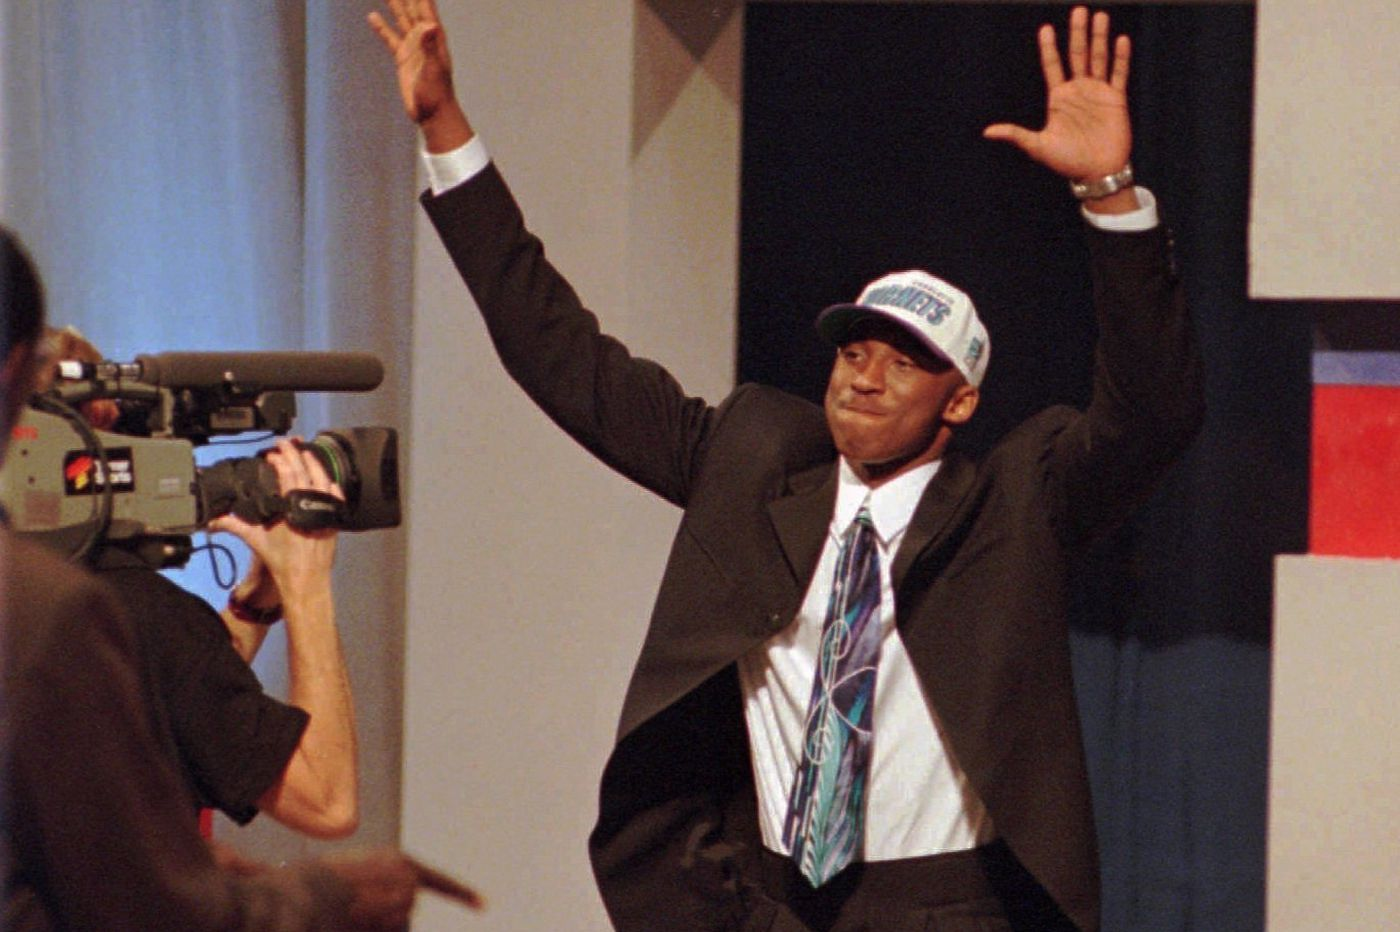 Sports chatter: Which NBA draft class was better, 1996 or 2003?